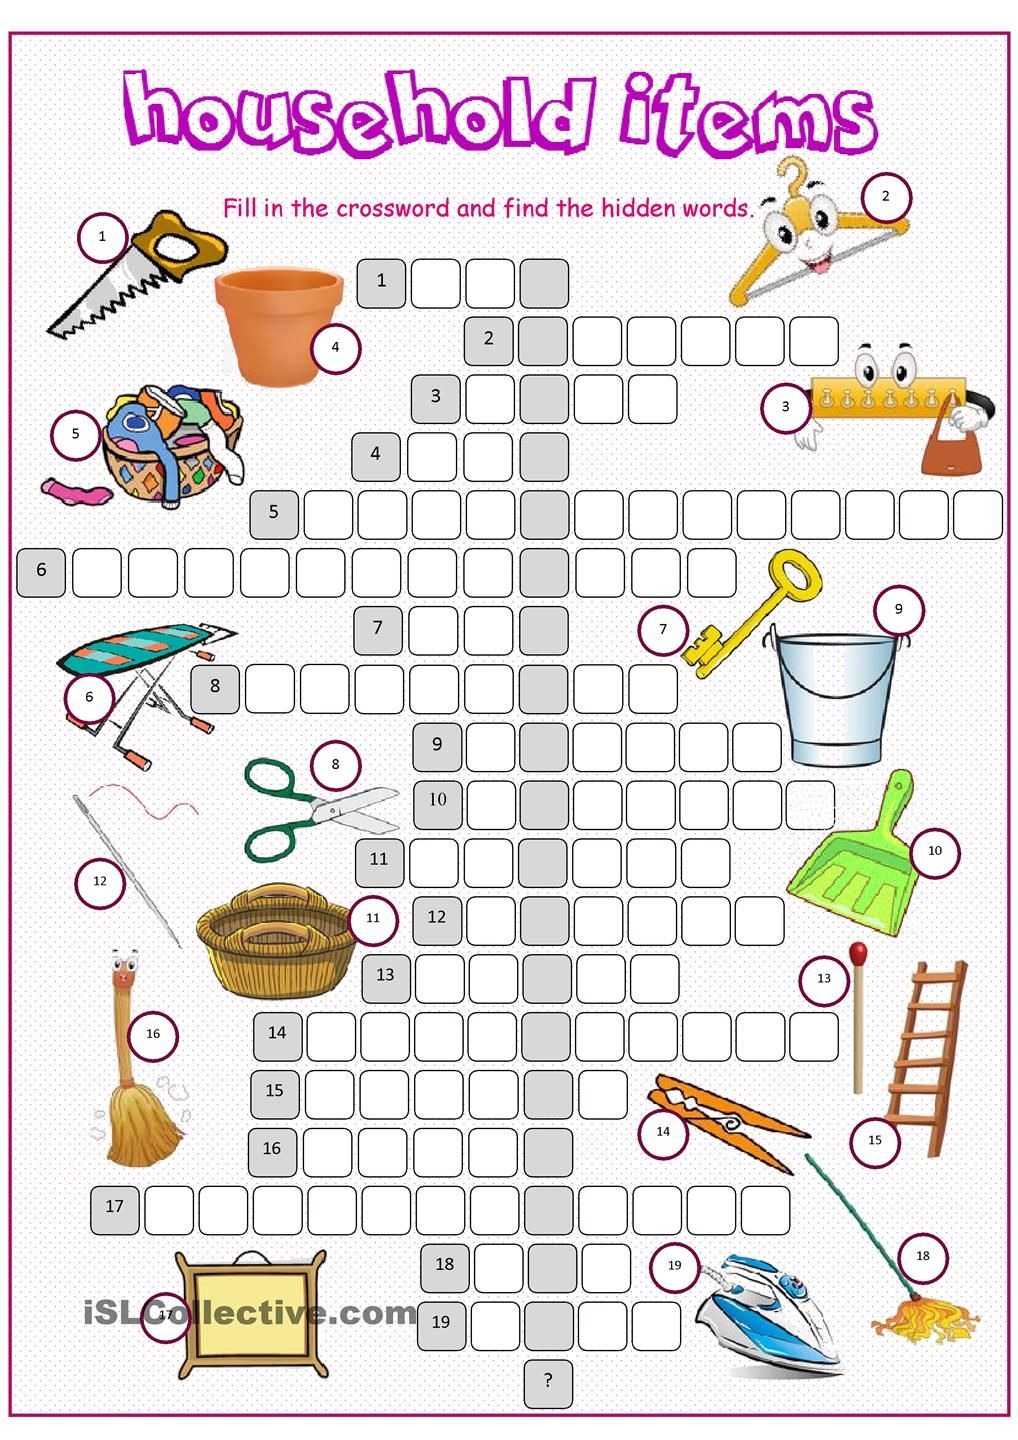 worksheet English Language Puzzles Worksheets household items crossword puzzle school ideas pinterest puzzleshousehold itemshouseholds worksheetsstudent centered resourceslanguage